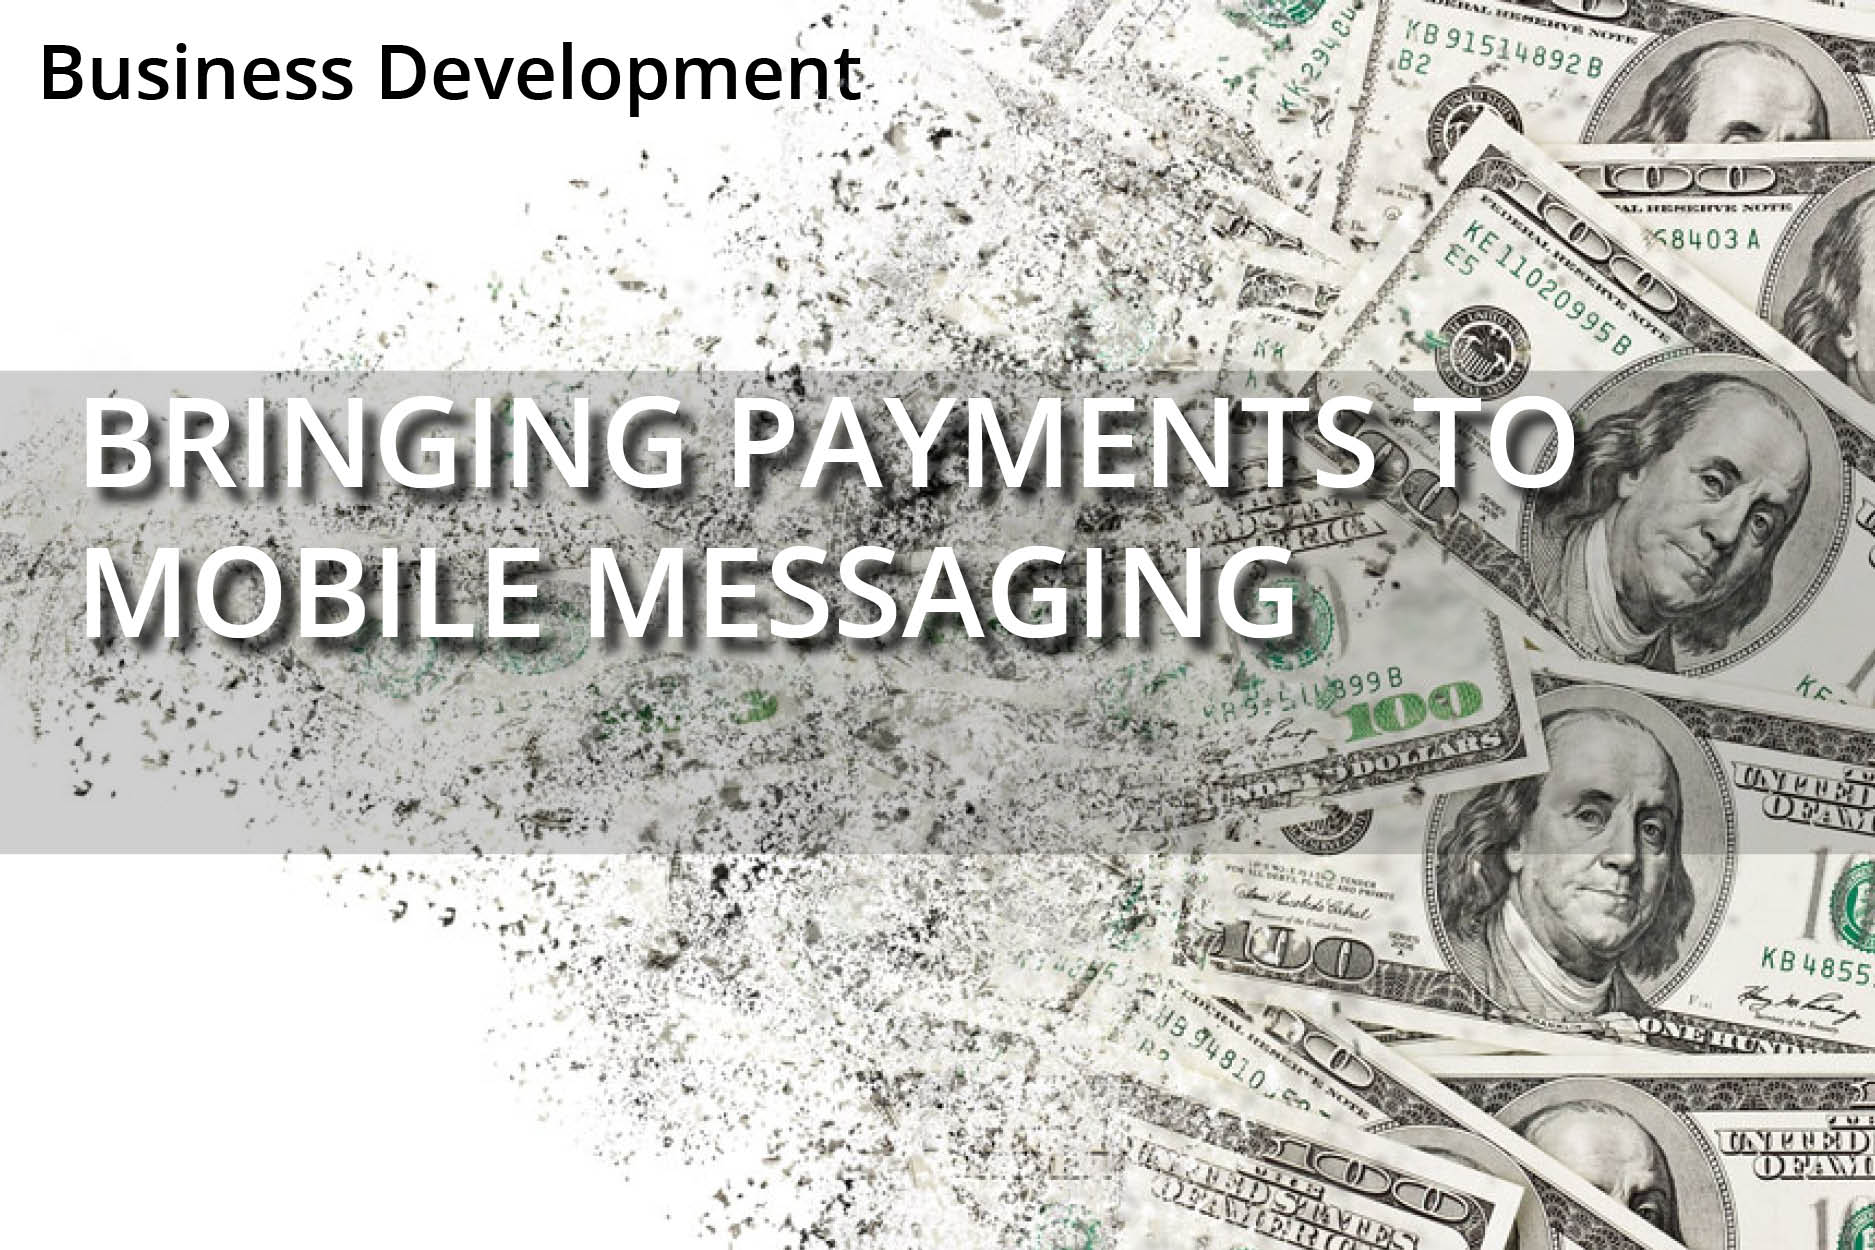 Bringing Payments to Mobile Messaging